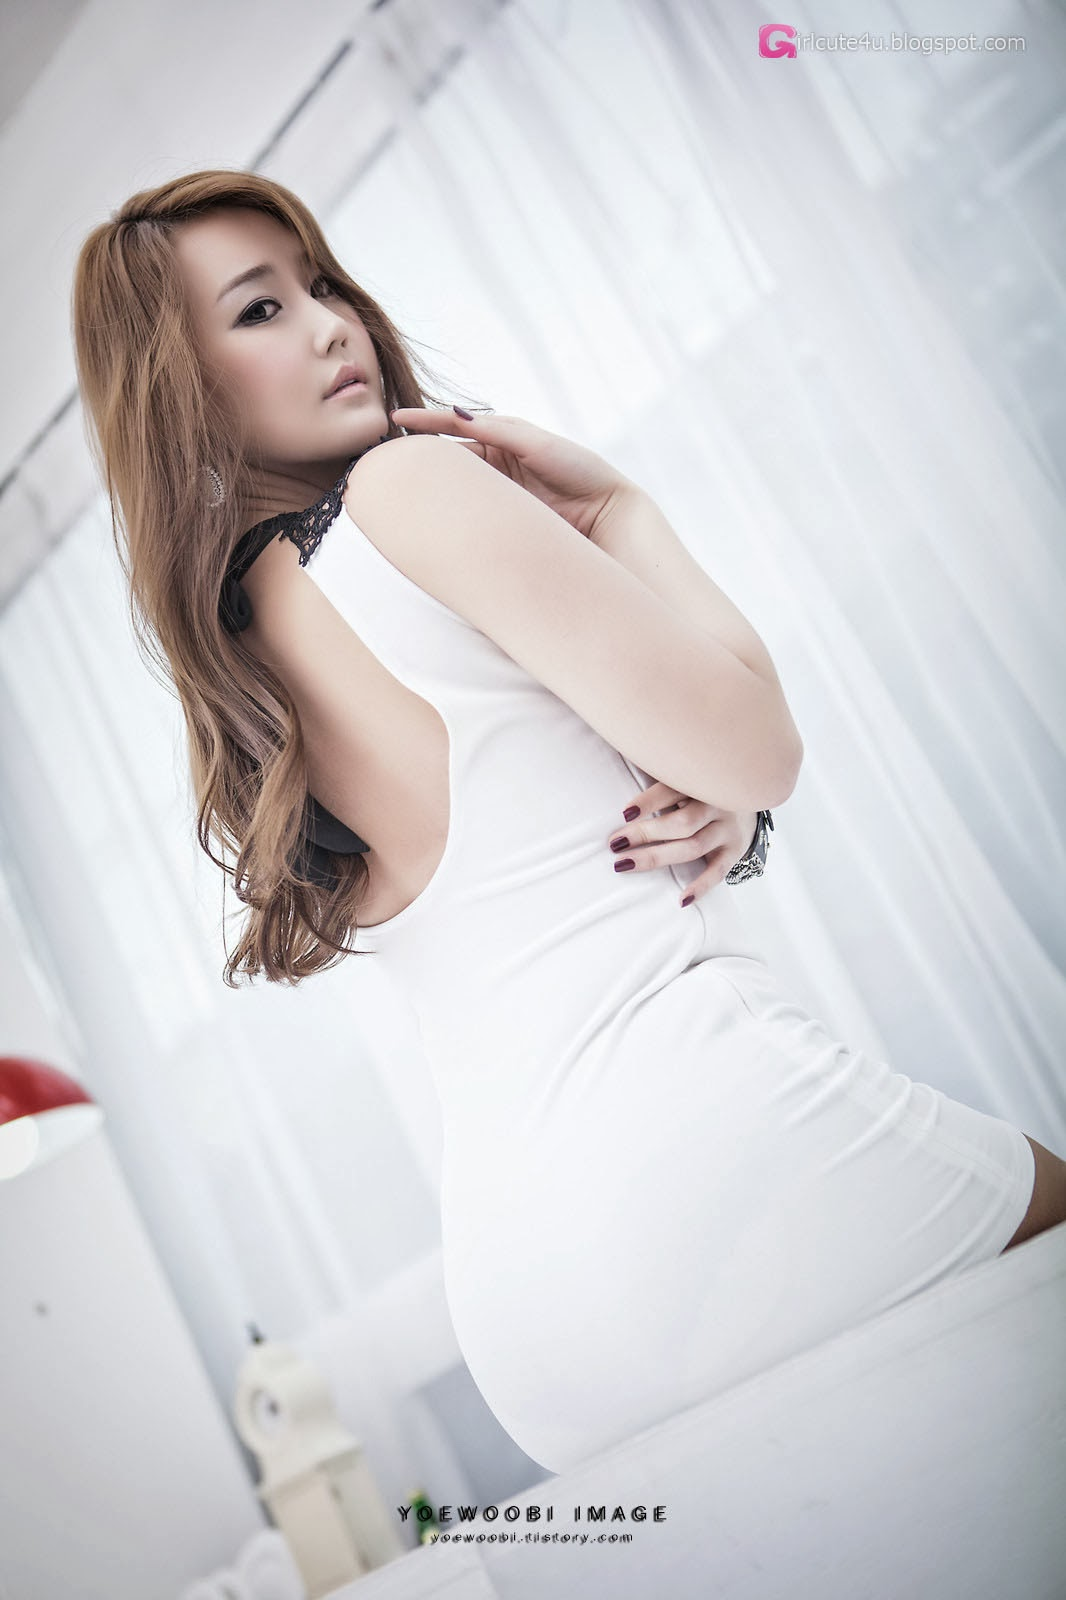 1 Lee Hyo Young - very cute asian girl-girlcute4u.blogspot.com